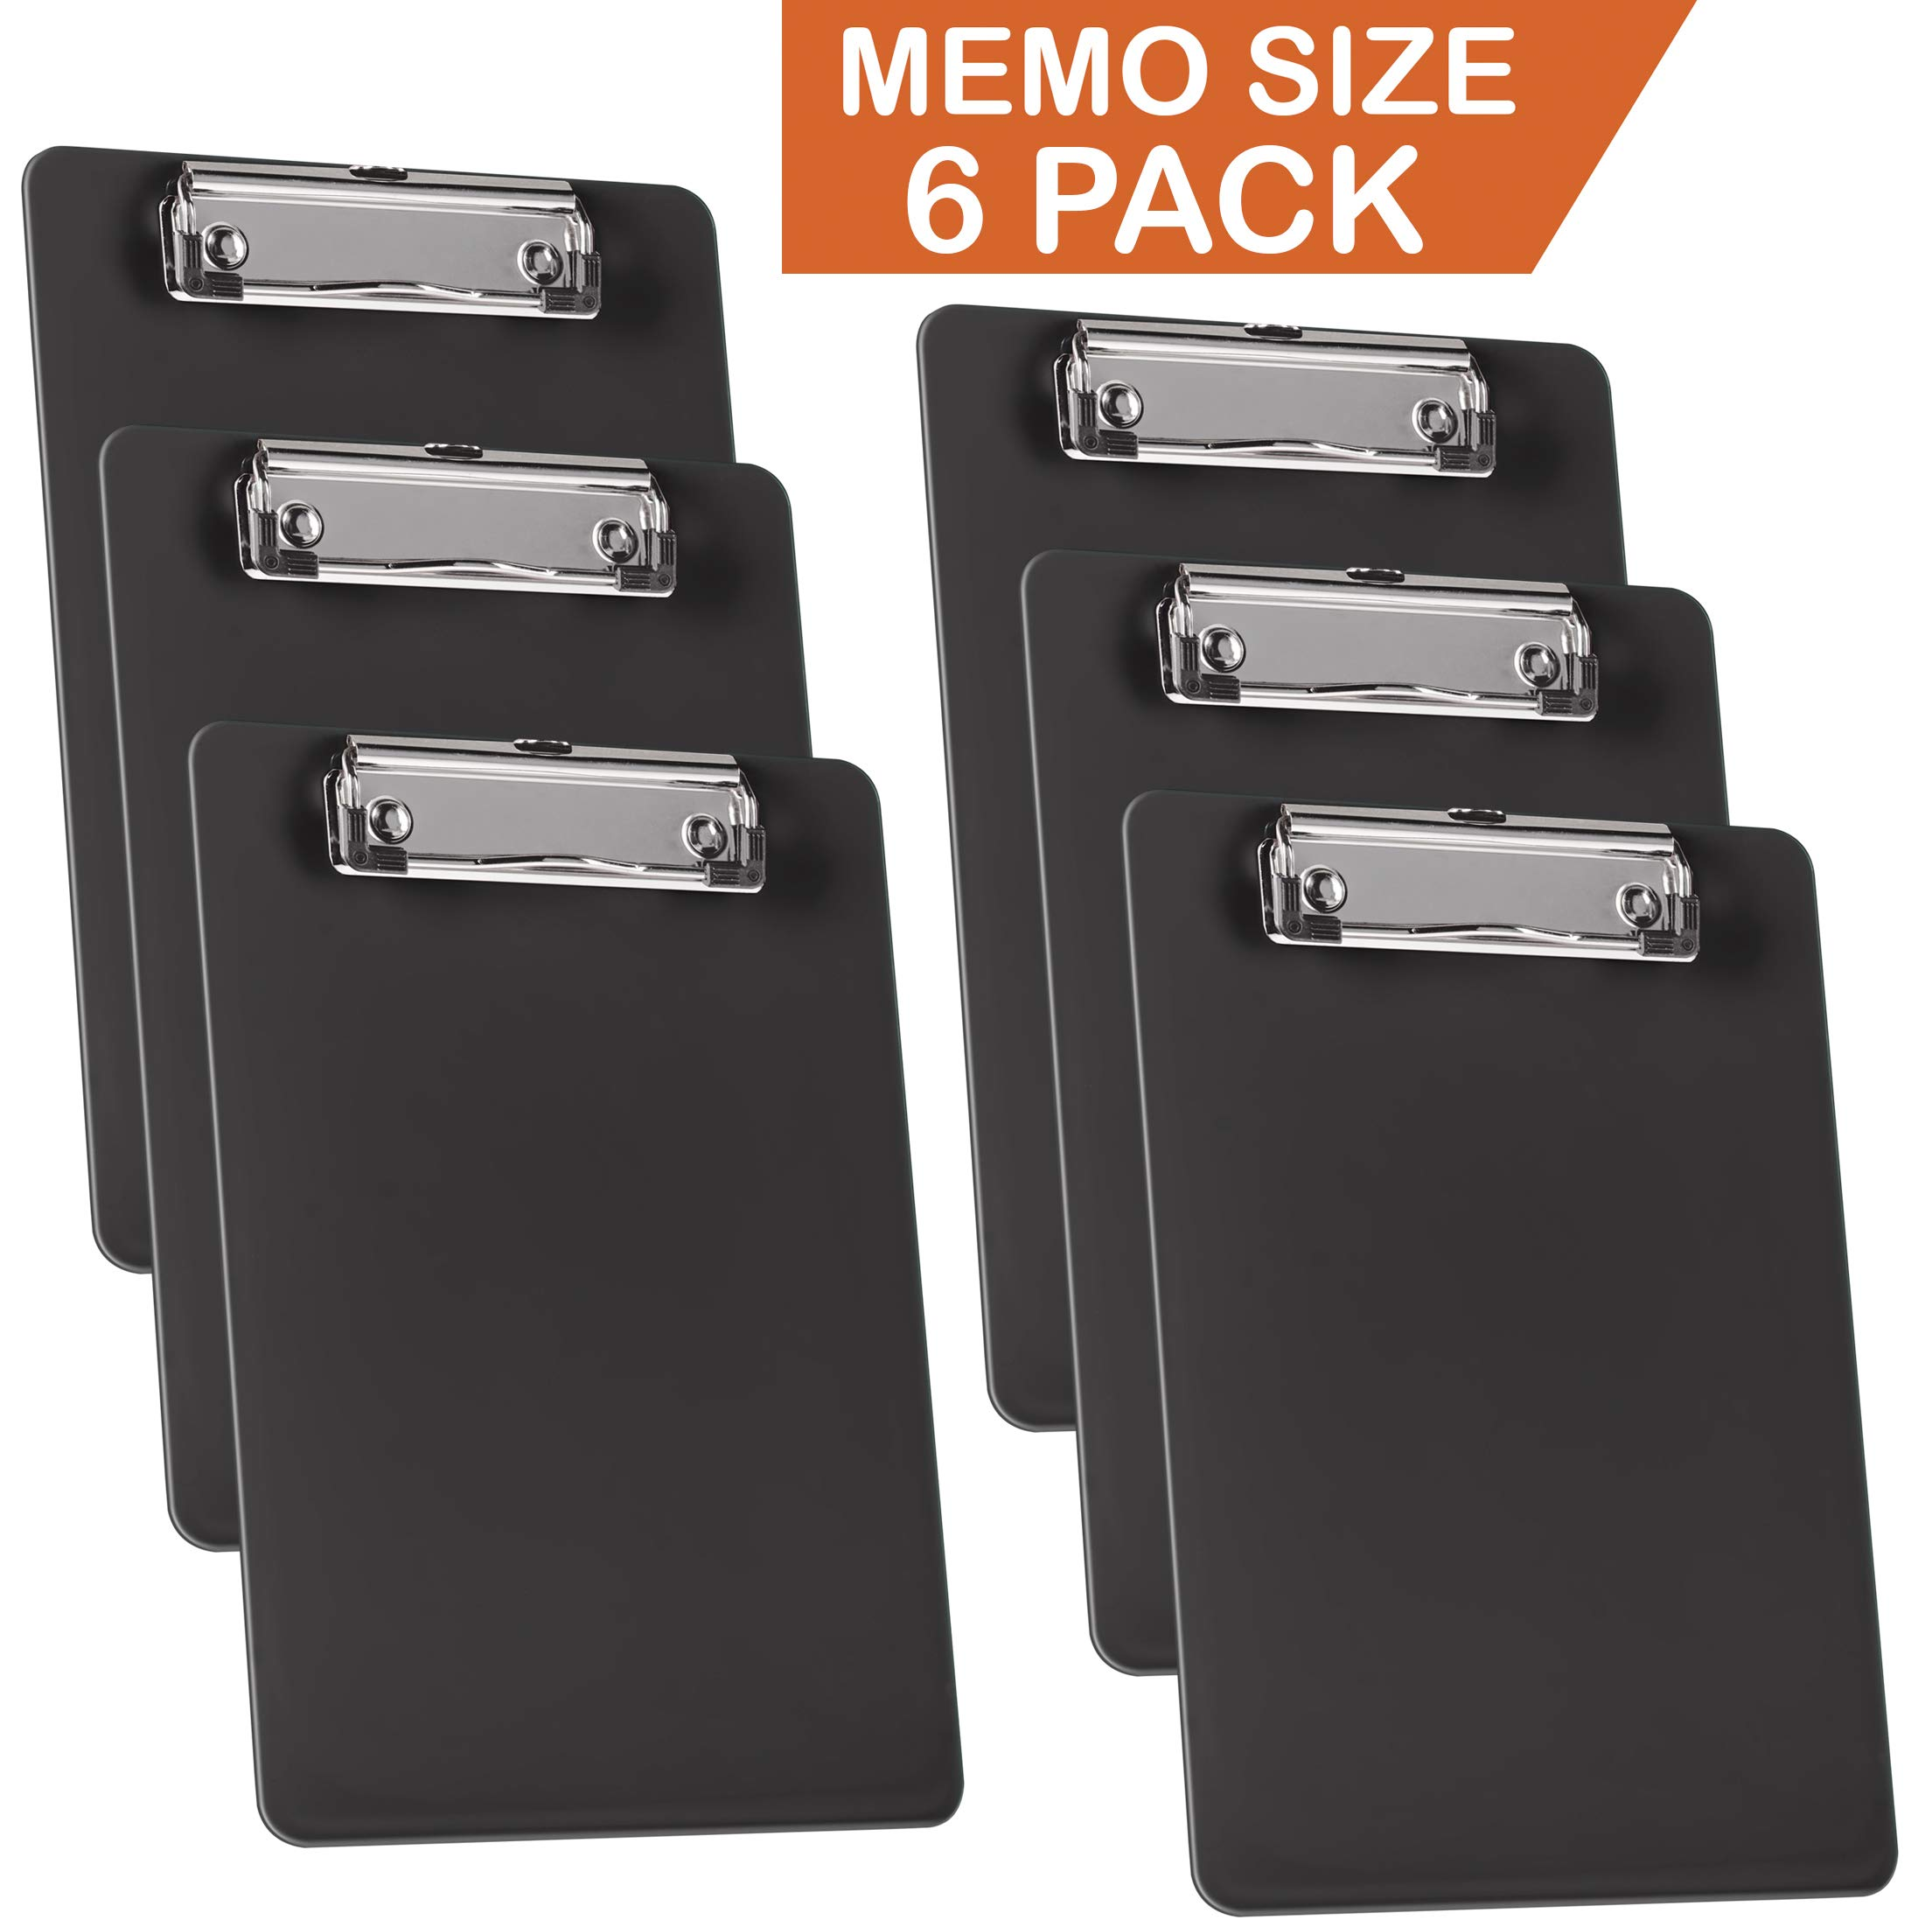 Acrimet Clipboard Memo Size 9 1/4'' X 6 1/4'' Low Profile Clip (Black Color) (Pack - 6)